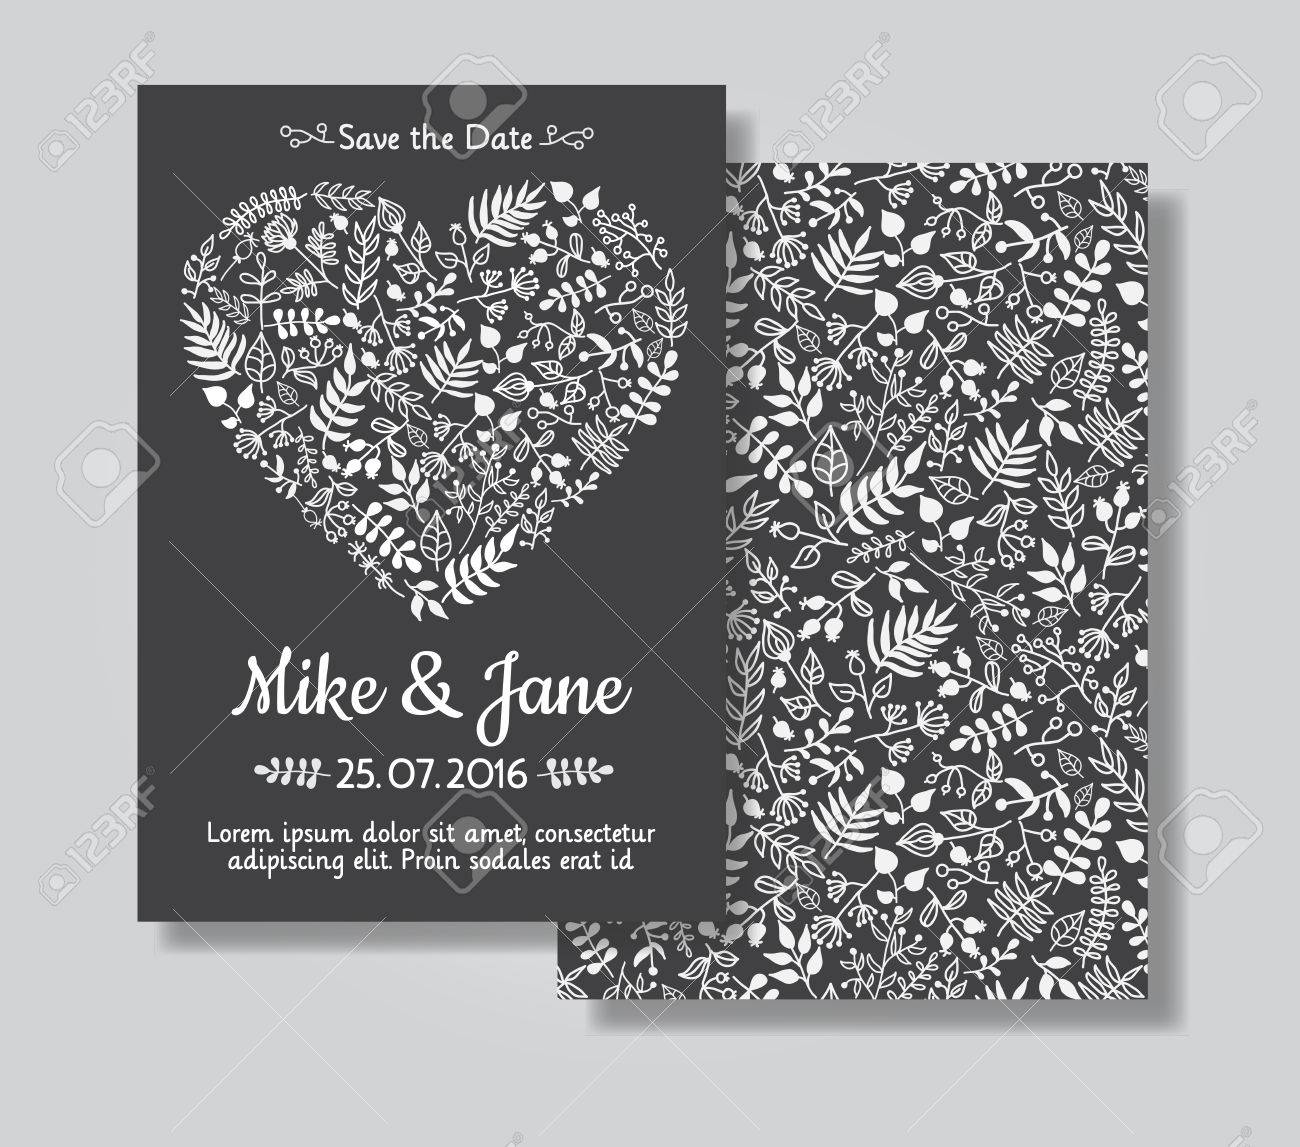 Rustic Wedding Invitation Card Set White Florals In Heart Shape